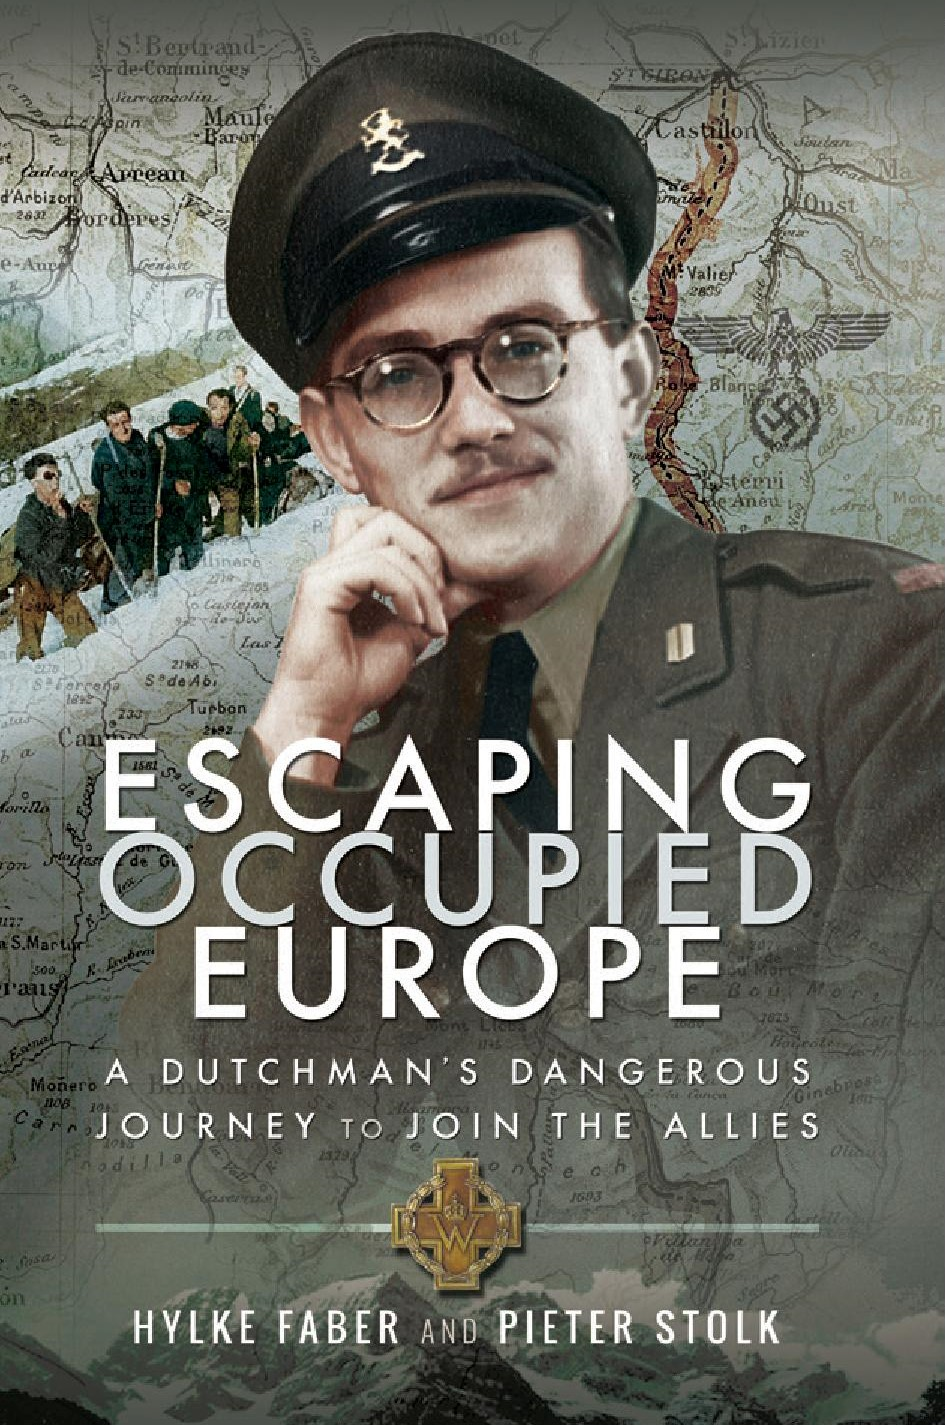 ESCAPING OCCUPIED EUROPE